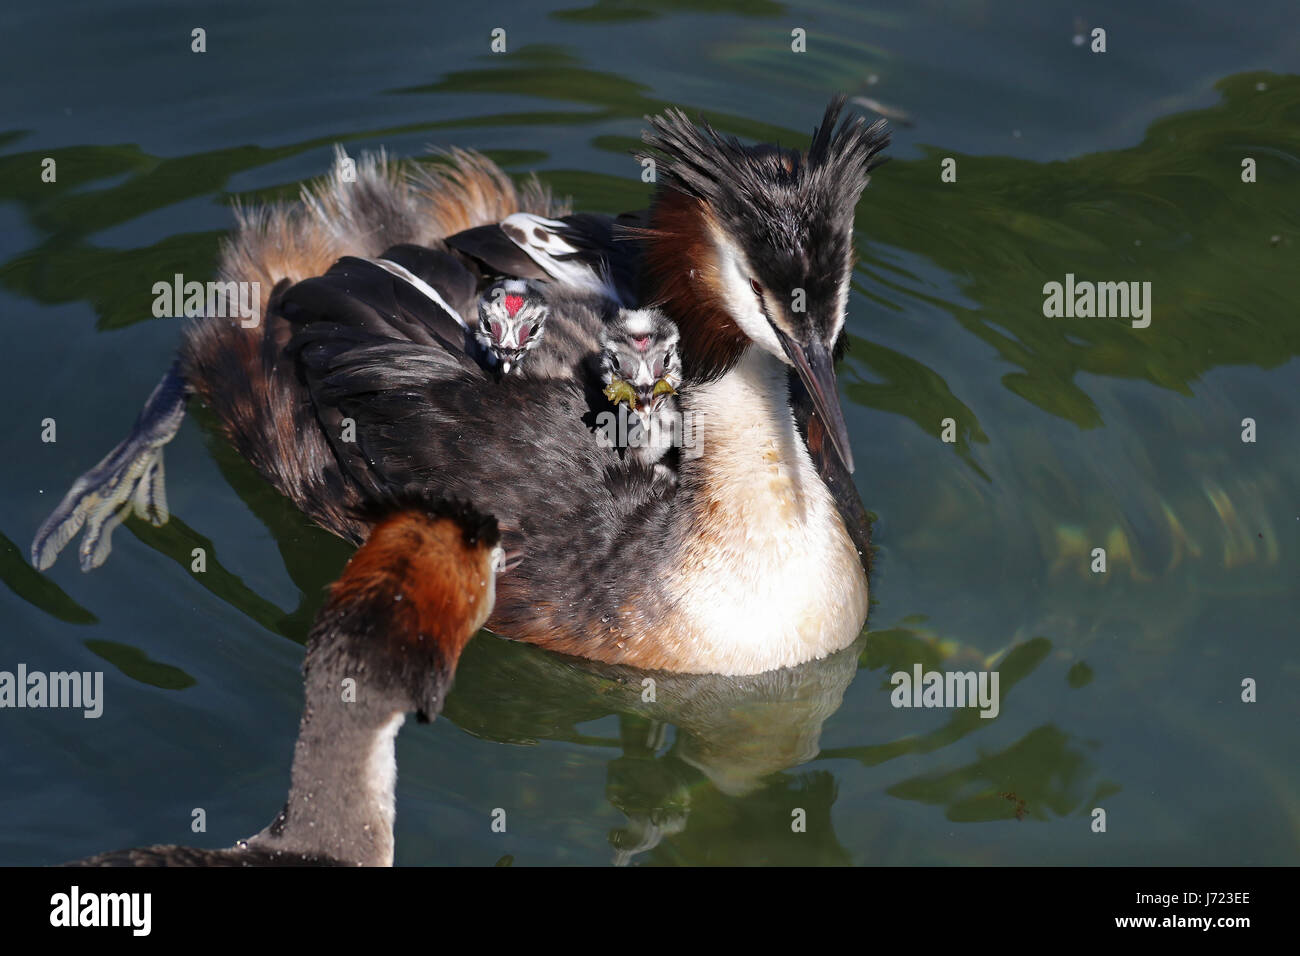 Great crested grebes, Podiceps cristatus, with baby chicks, one with red heart on forehead, on its back being fed - Stock Image